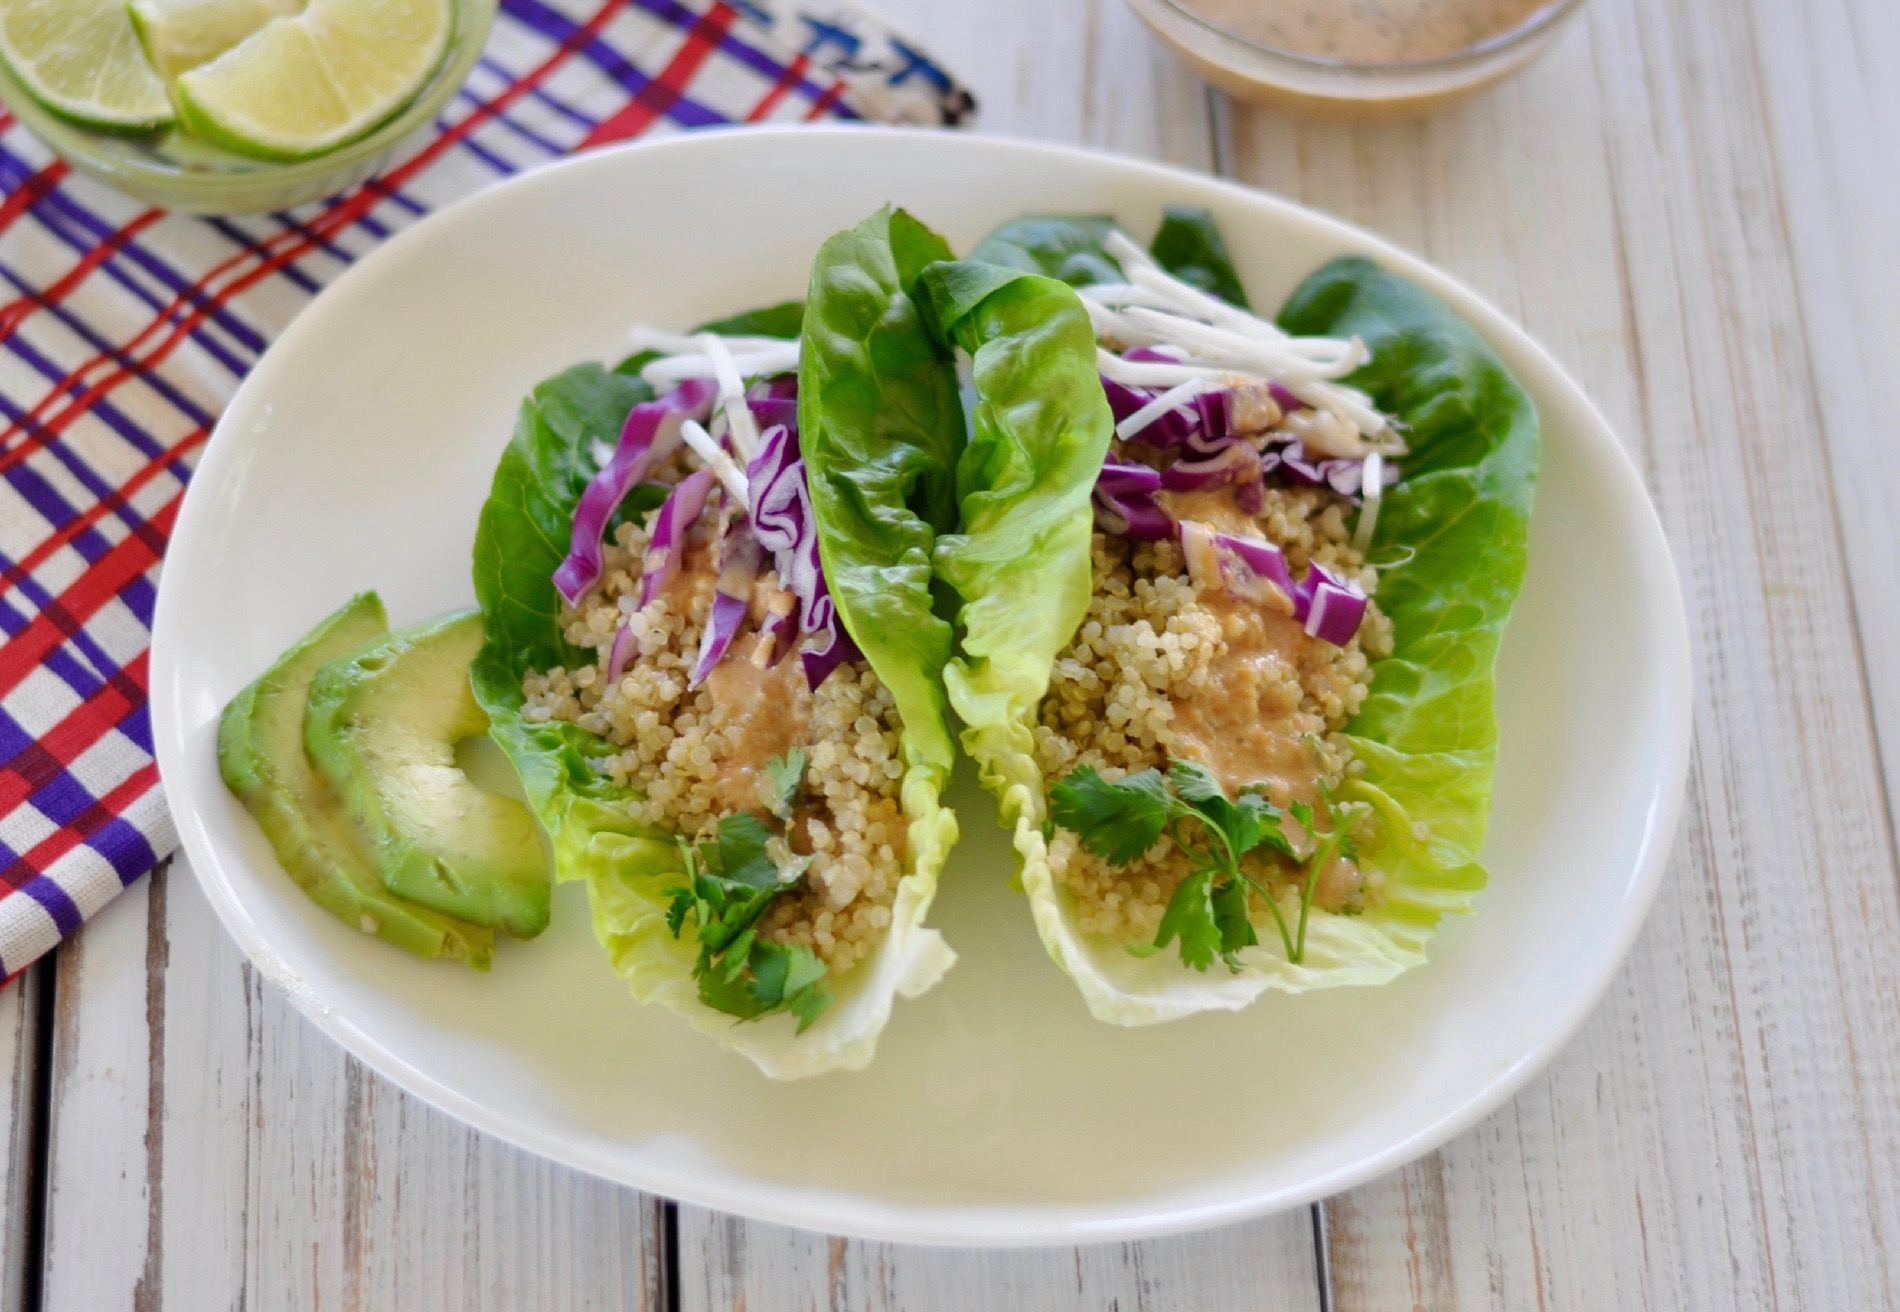 These delicious vegan lettuce wraps are an easy high-protein recipe. Topped with a healthy peanut sauce that can be enjoyed on just about anything! (#vegan) ordinaryvegan.net